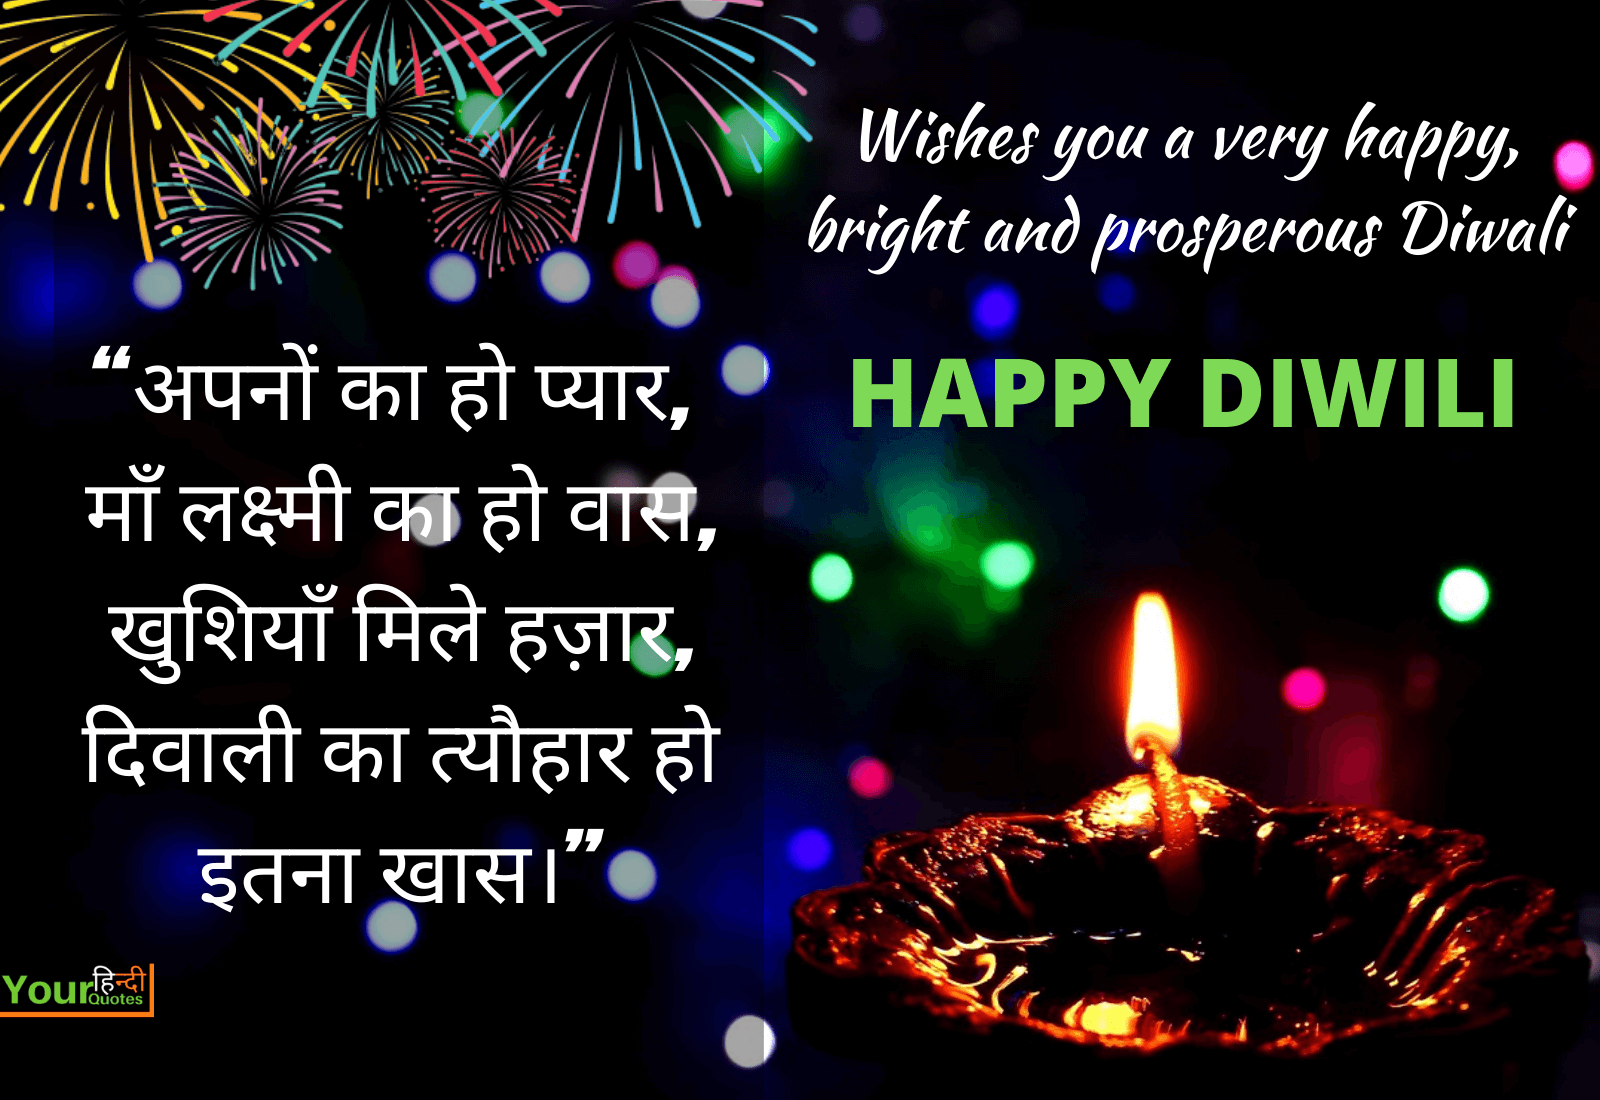 Happy Diwali Wishes Hindi Images